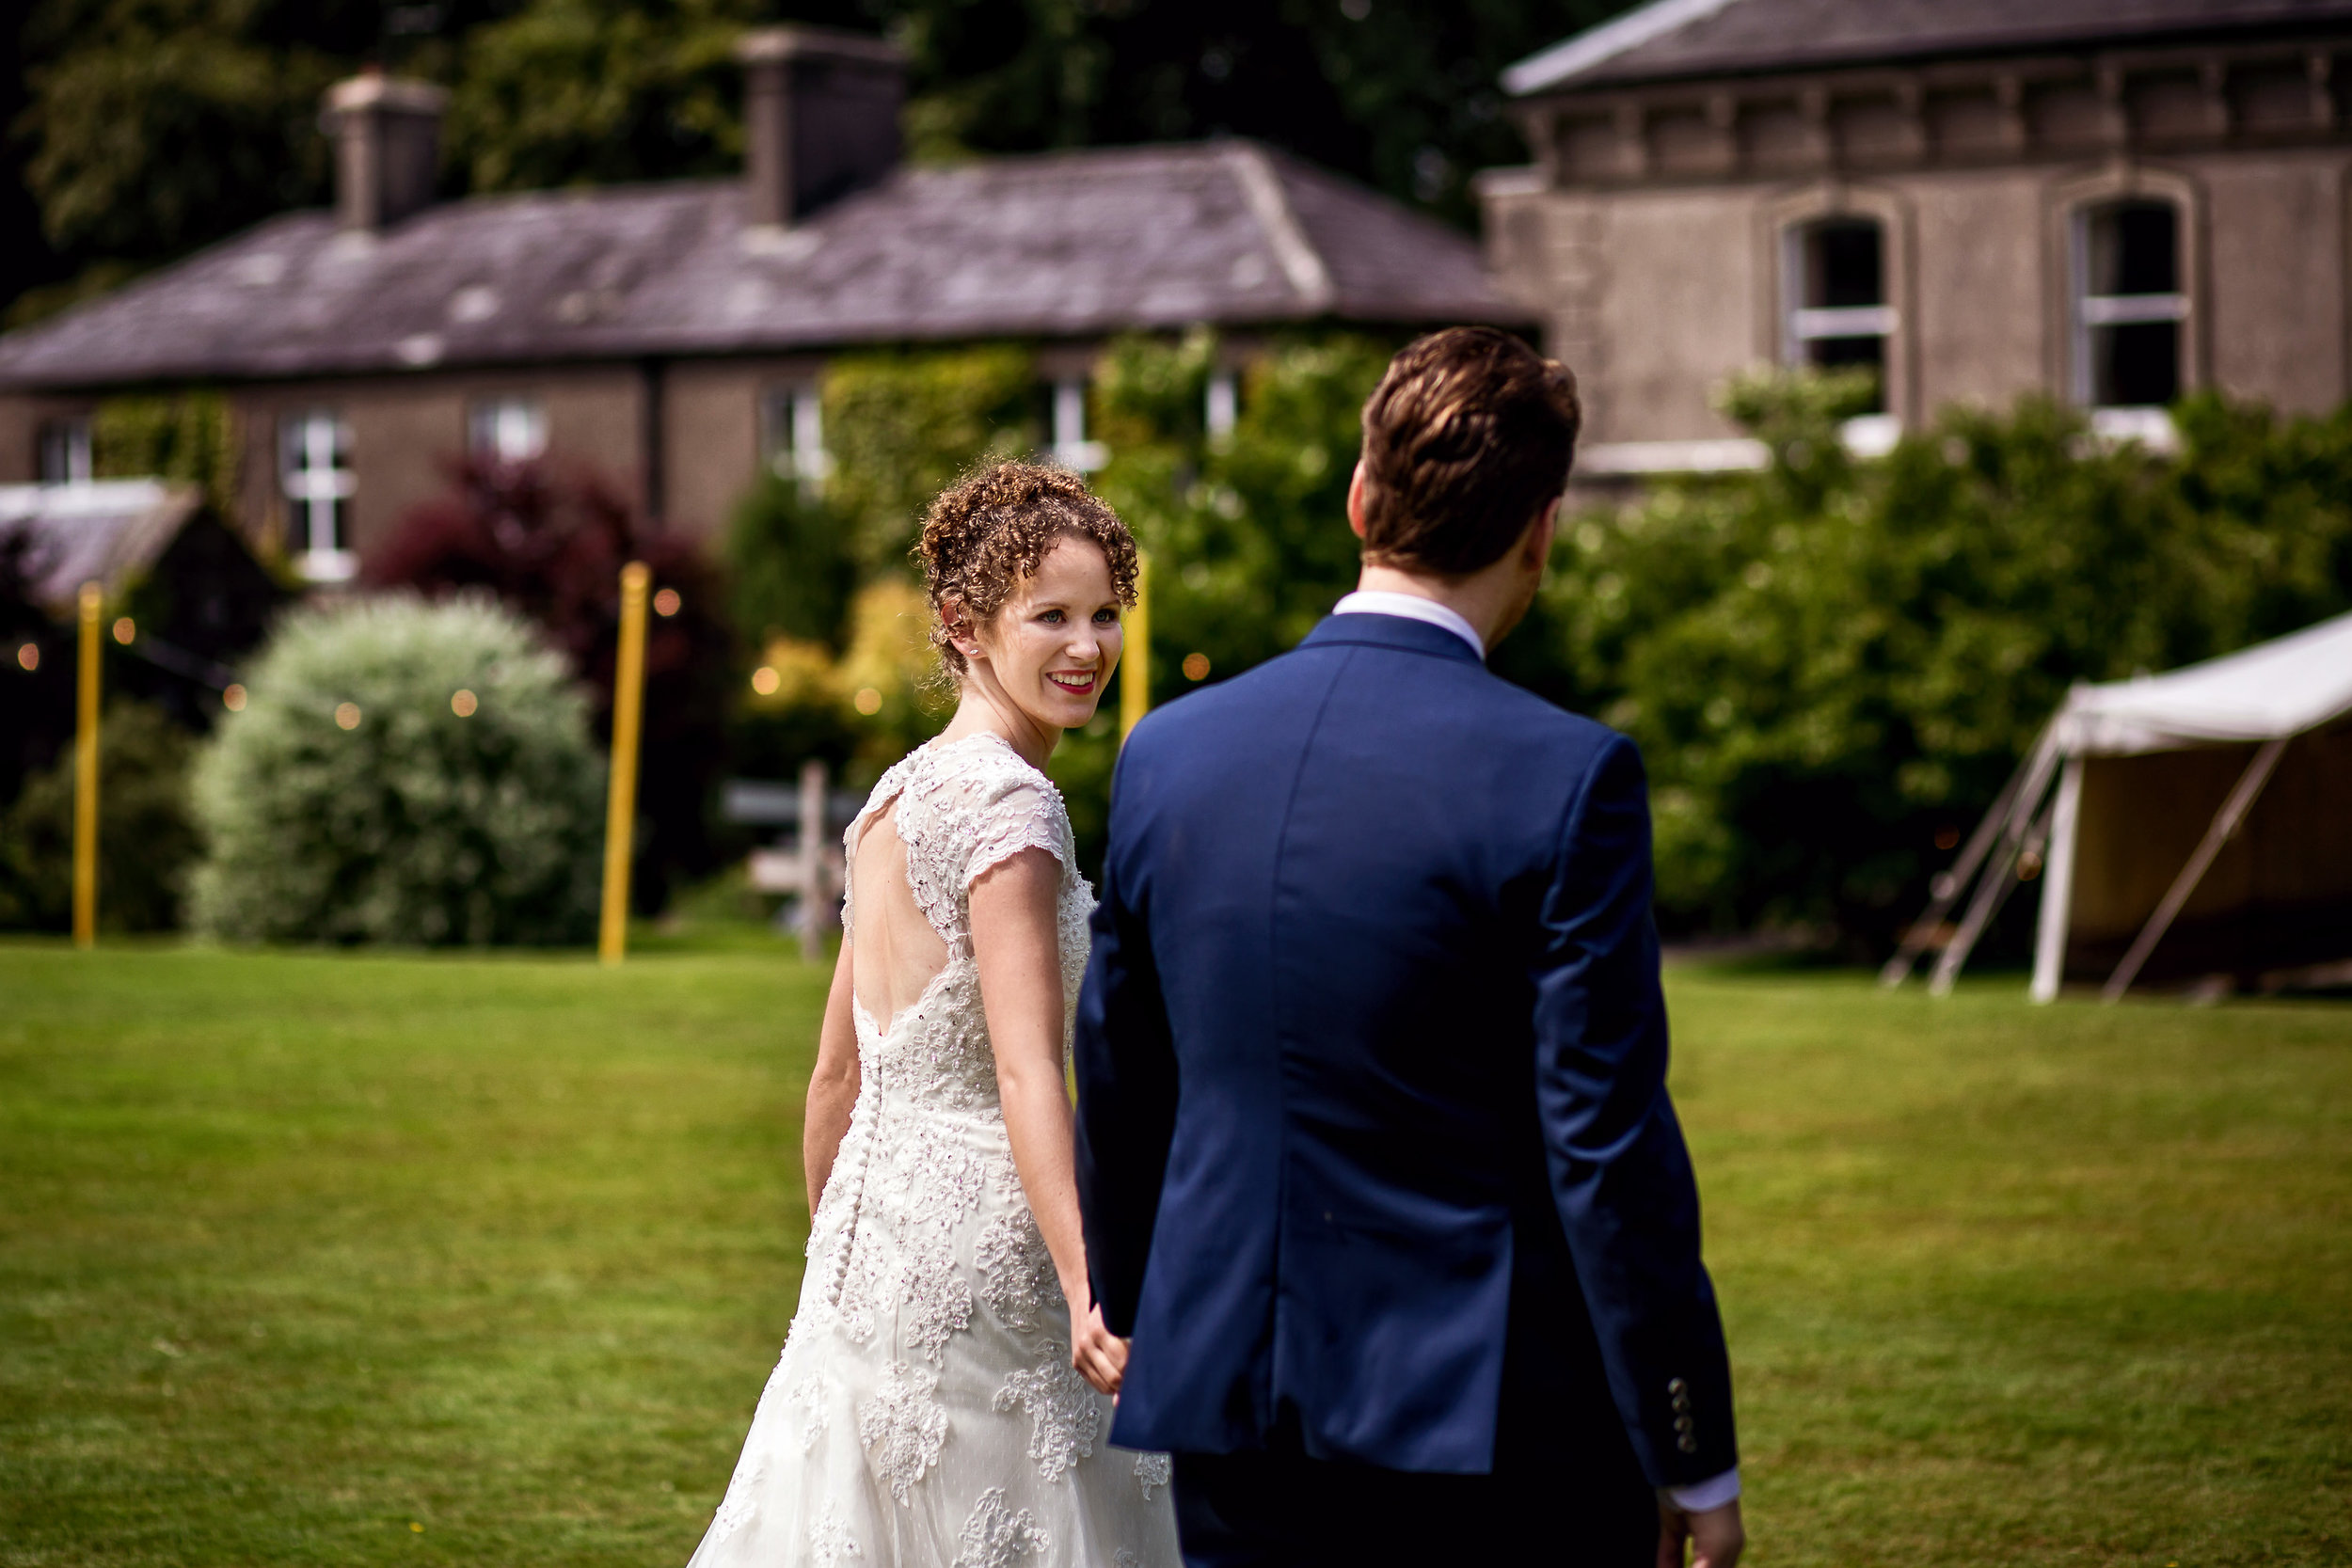 Ballyvolane wedding photography by David Casey Photography, Cork based wedding photographer.